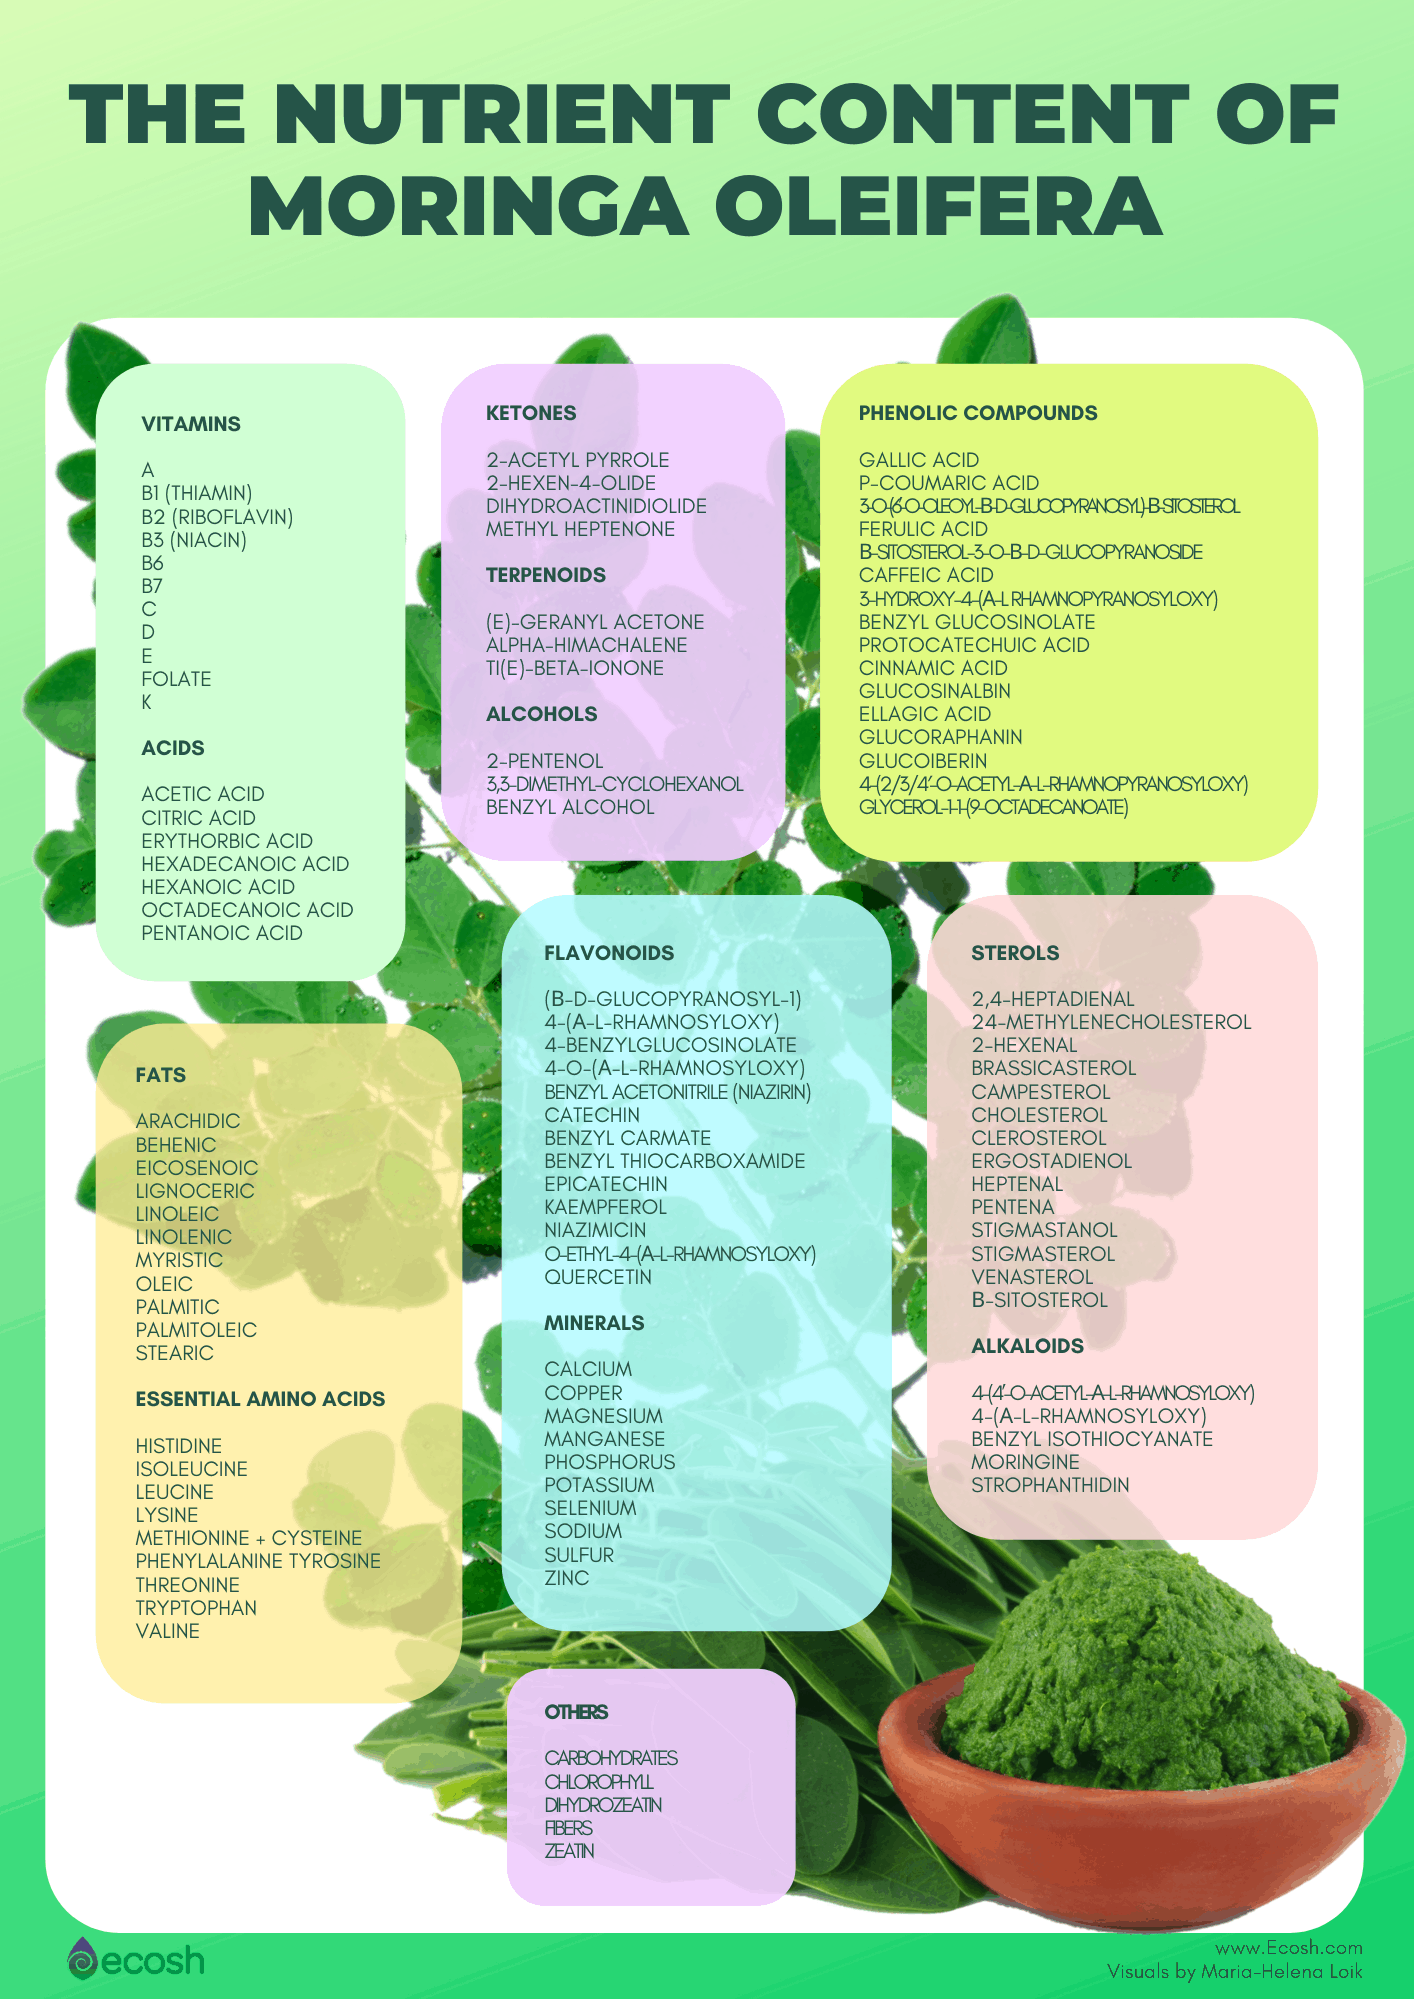 Ecosh_The_Nutrient_Content_Of_Moringa_Oleifera_Moringa_Nutrients